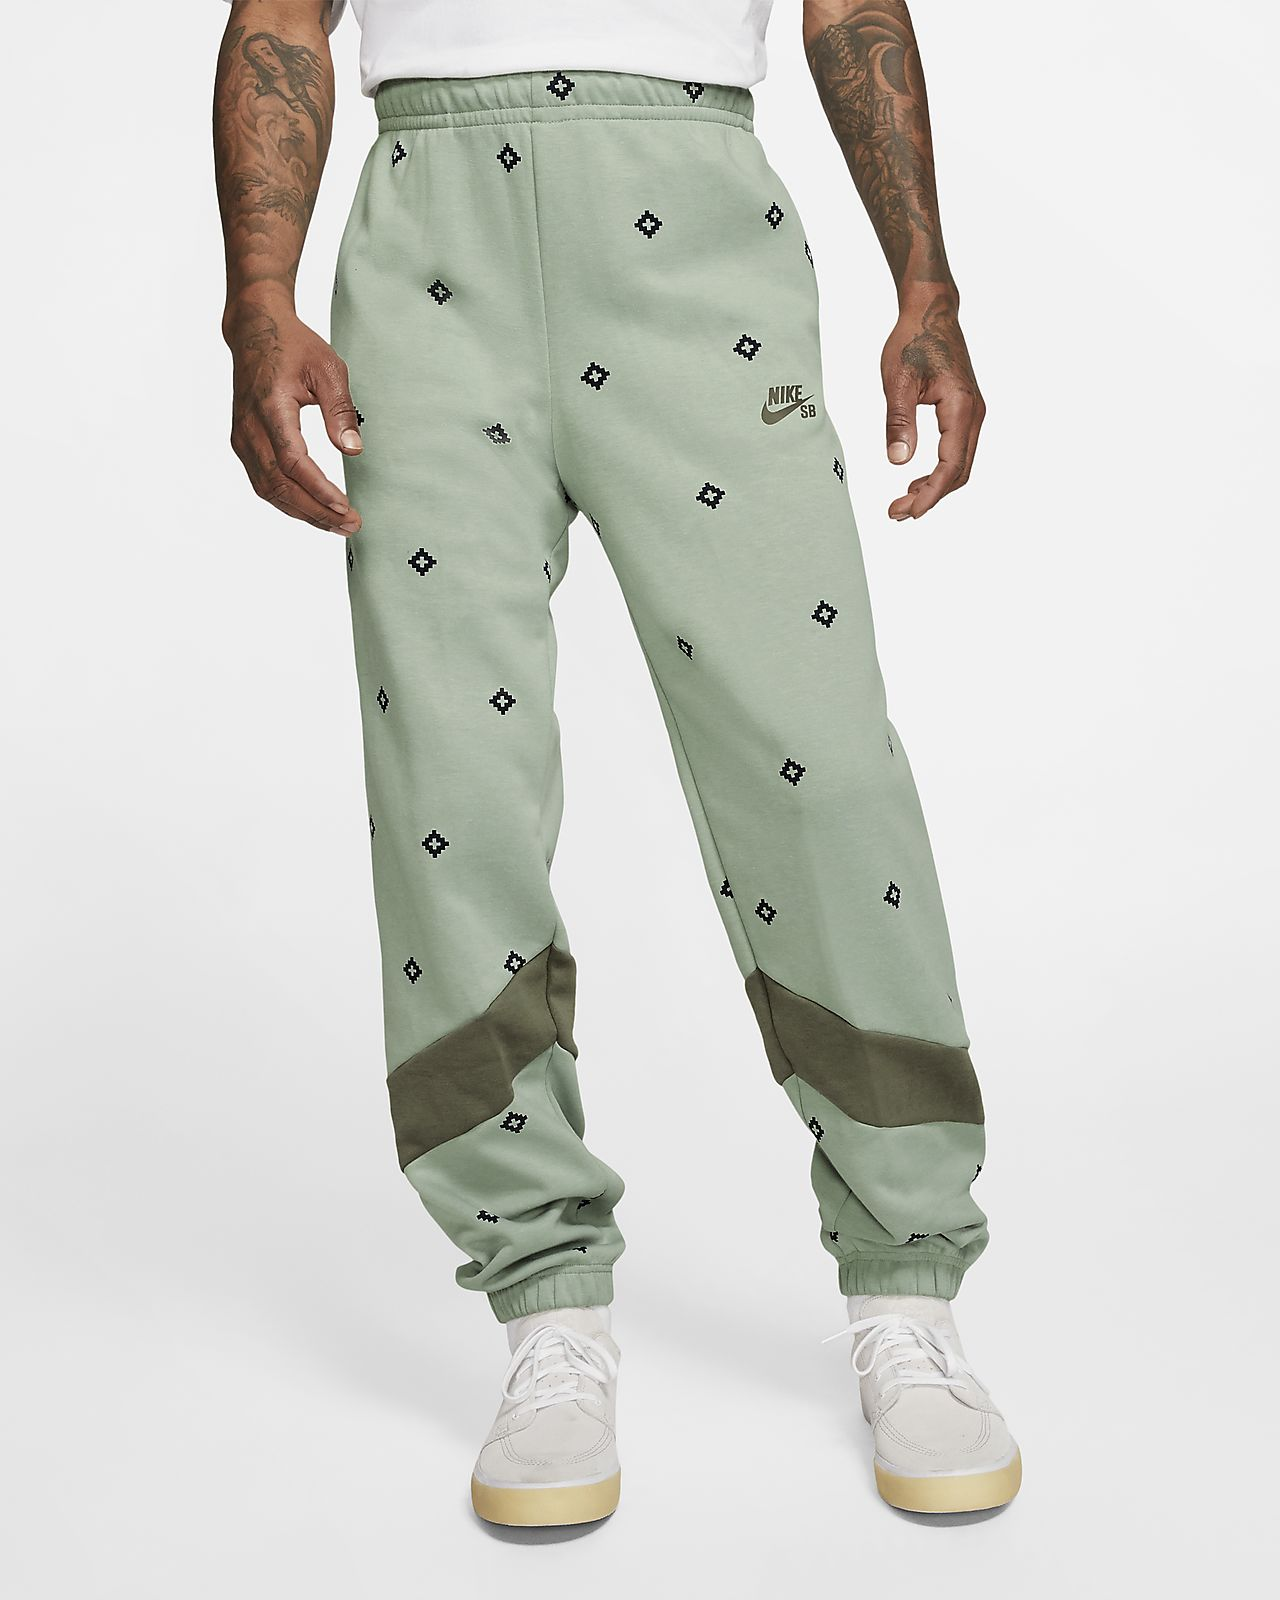 Nike SB Dri-FIT Men's Printed Skate Tracksuit Bottoms